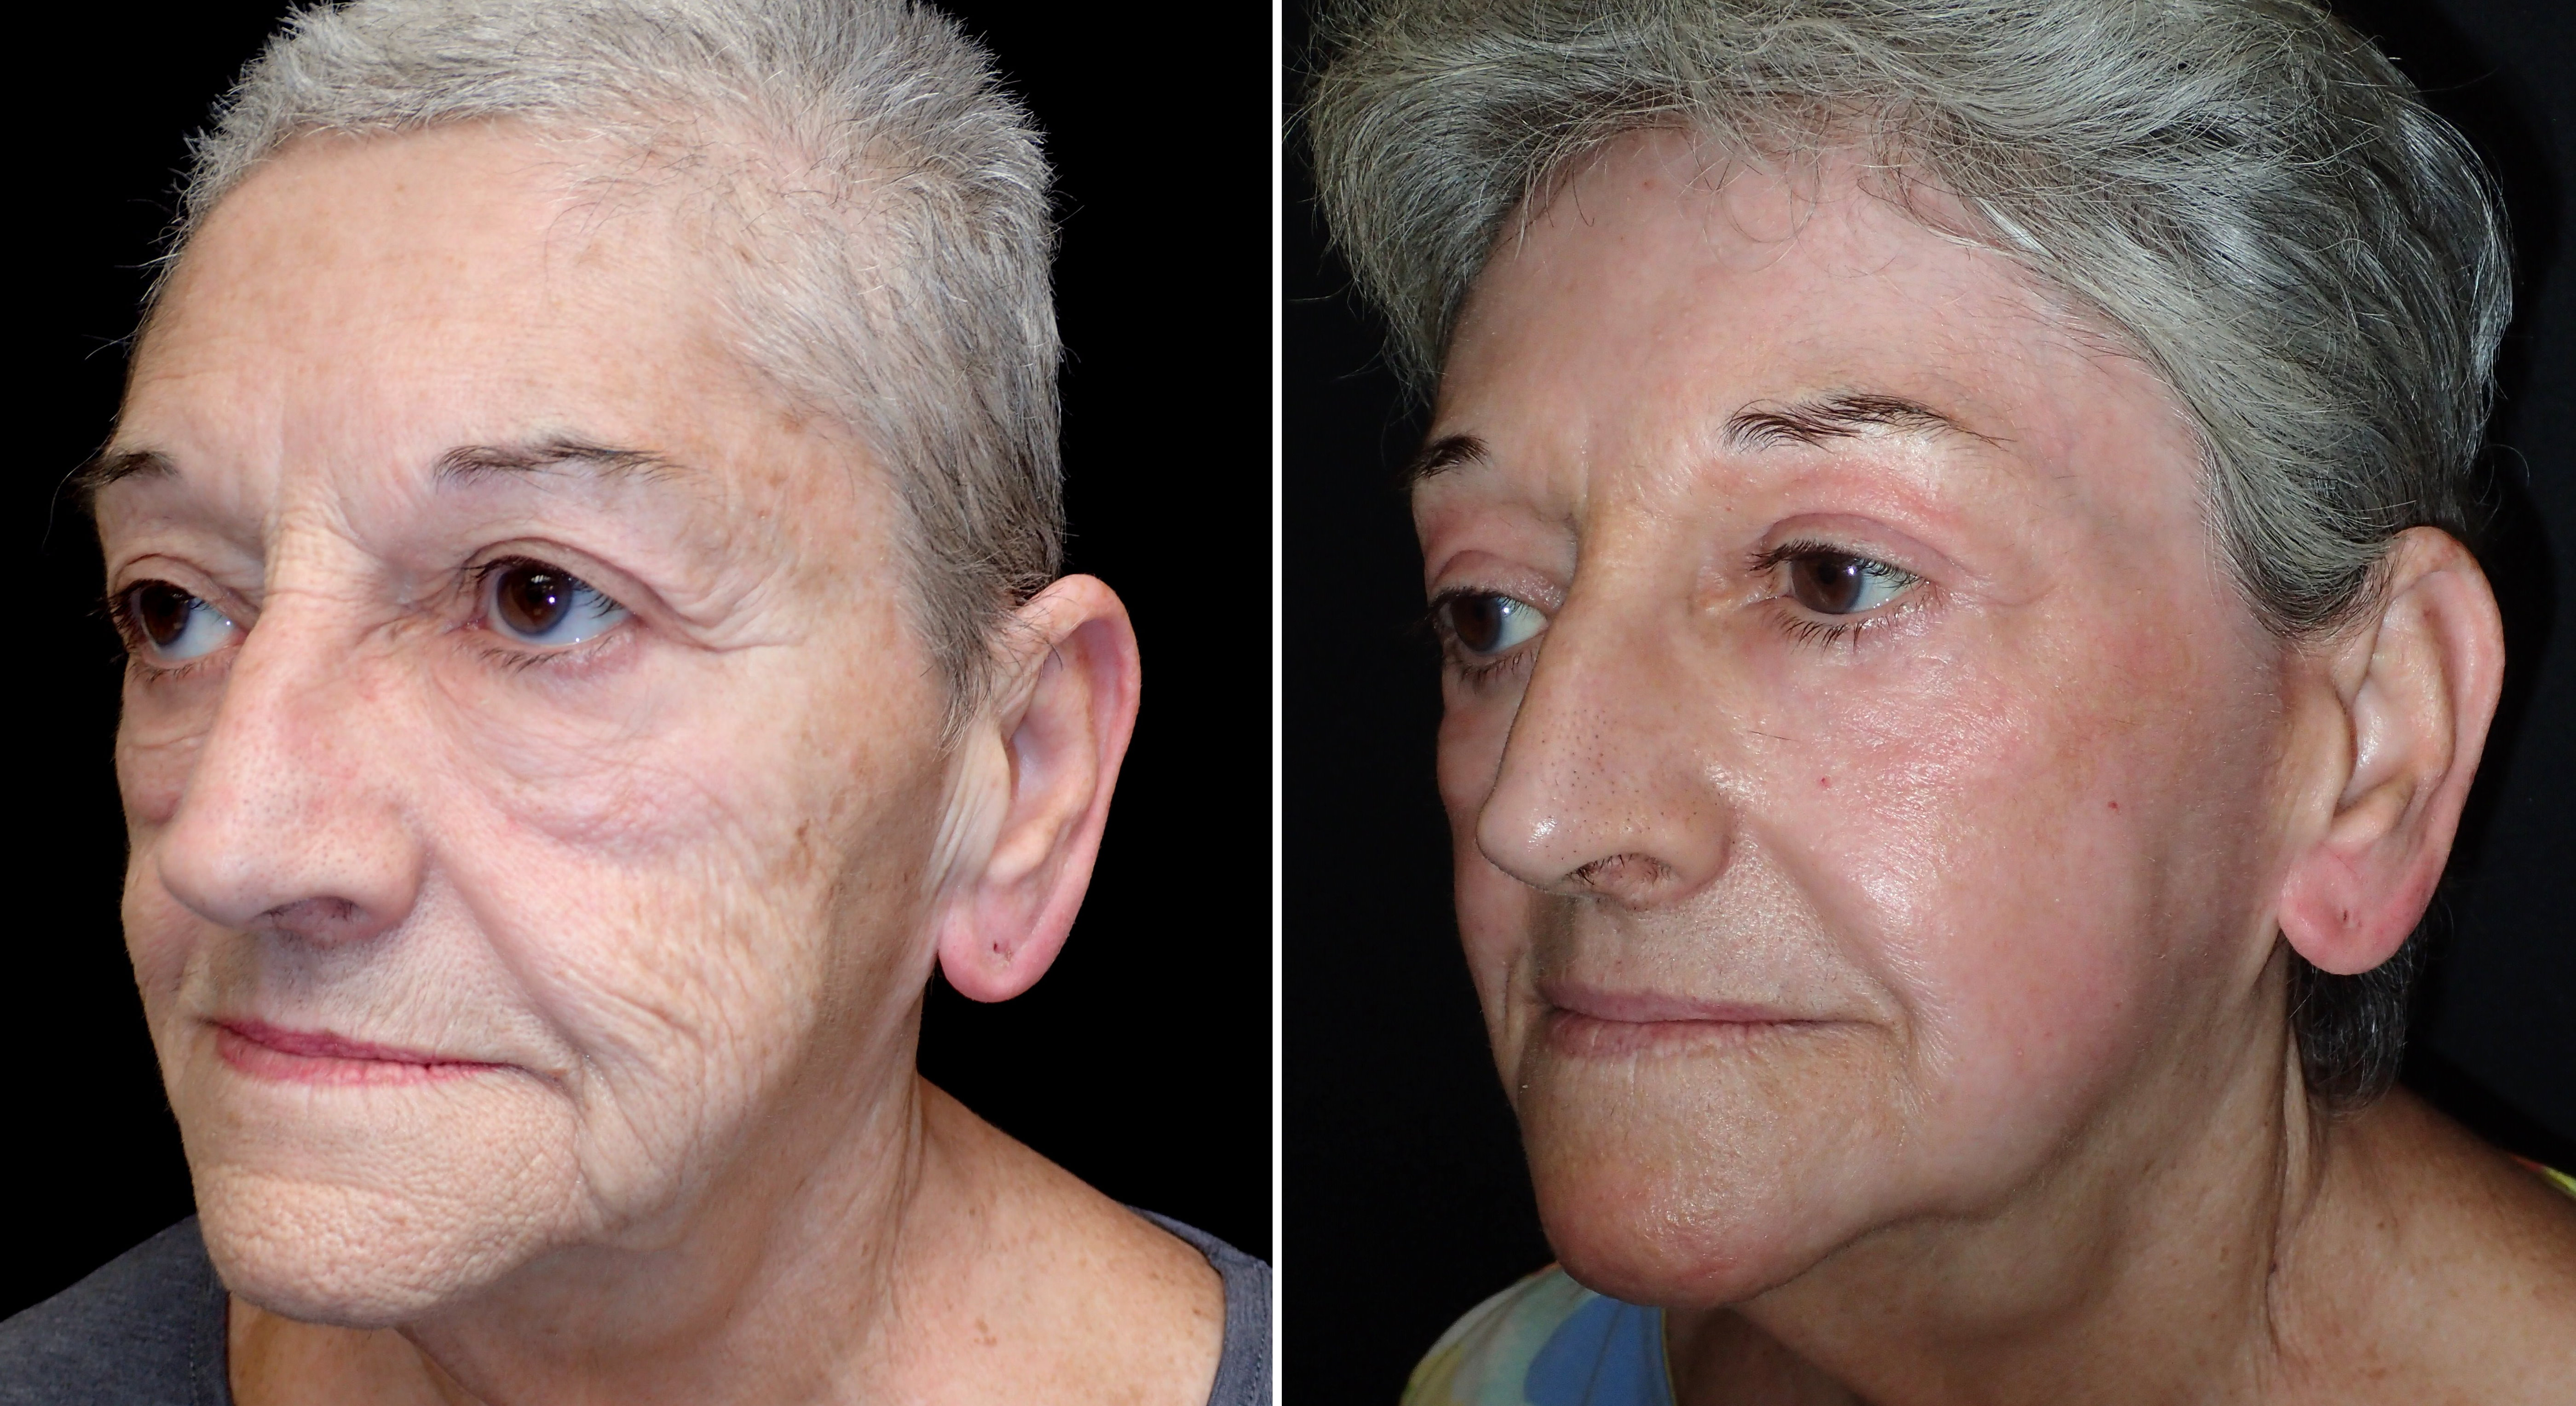 Facial resurfacing before and after